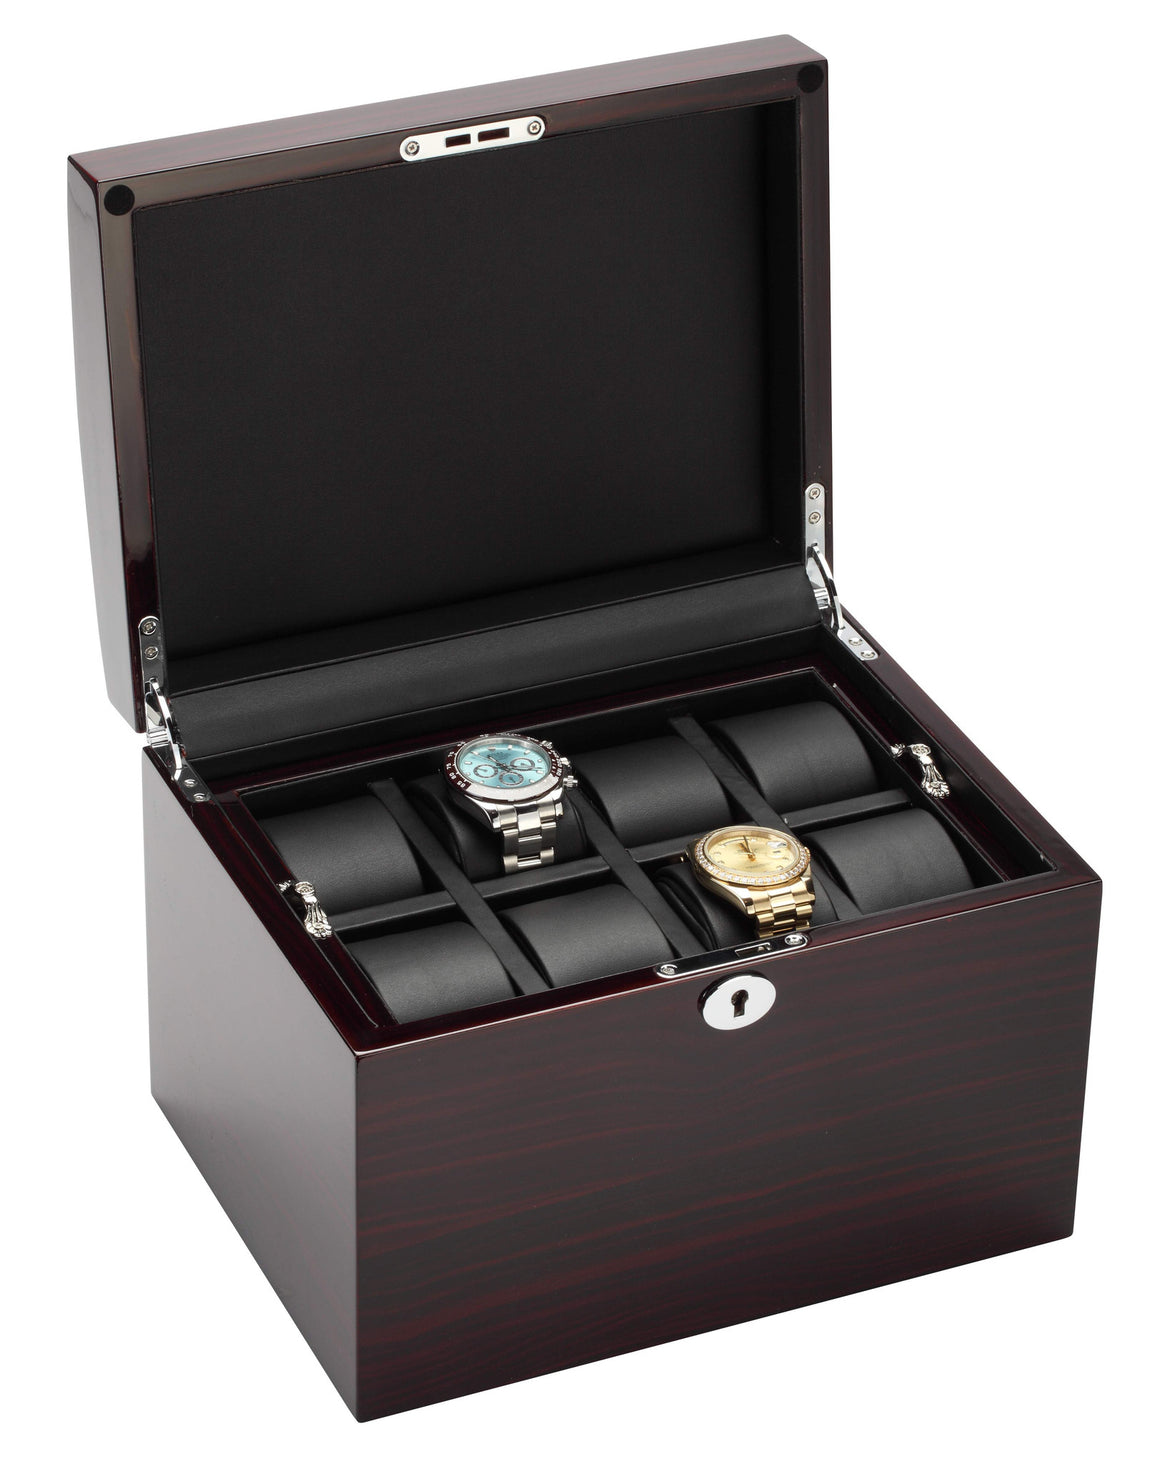 Diplomat Ebony Finish Sixteen Wood Watch Box with Black Leather Interior and Locking Lid